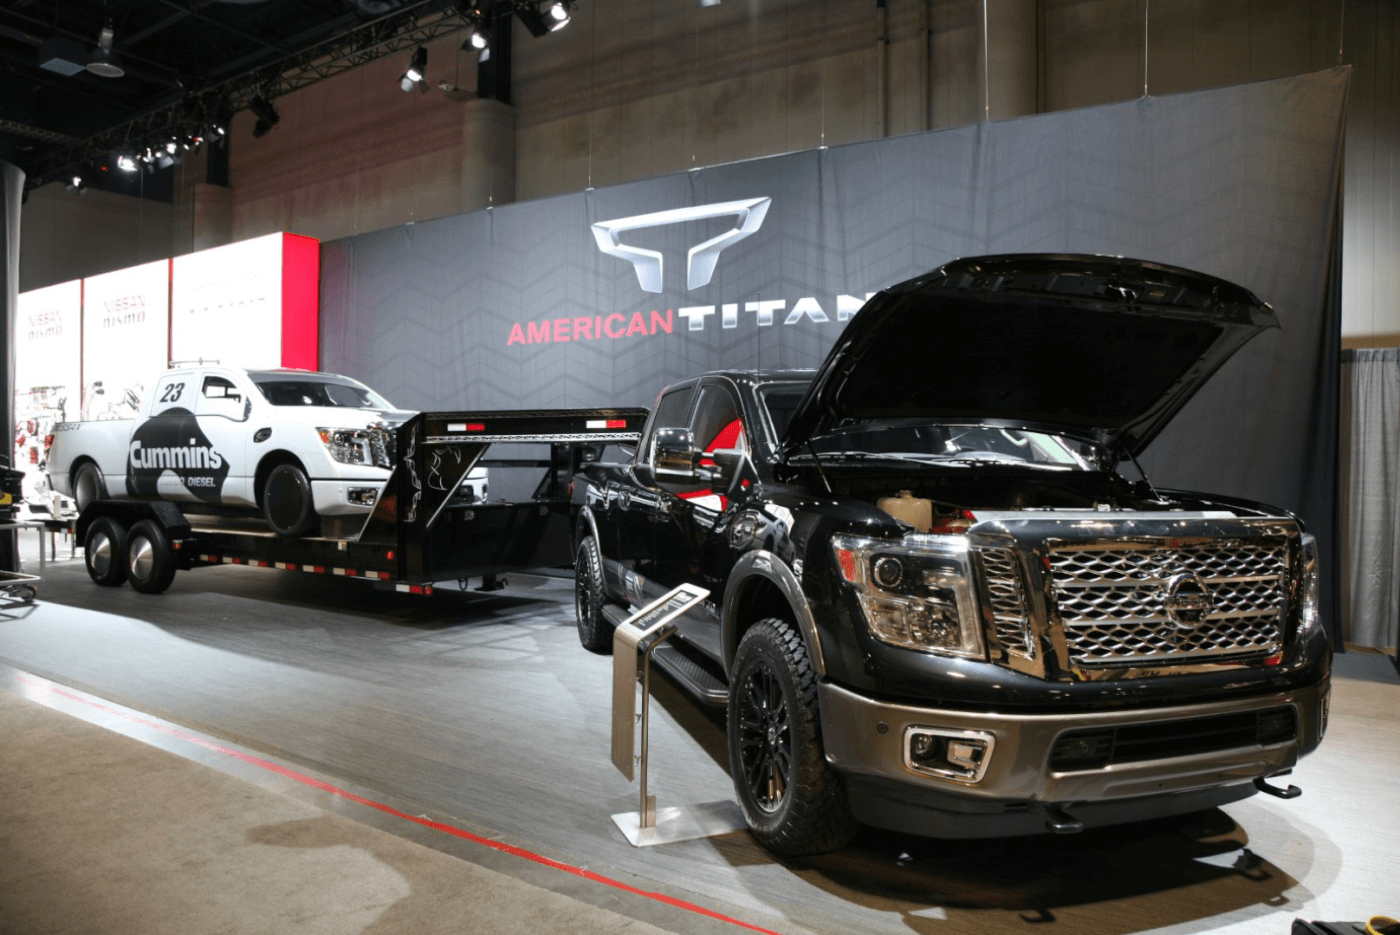 """With the release of the new Cummins powered Nissan Titan, Nissan has decided to go after a new land-speed record with this truck dubbed """"Triple Nickle."""" The 5.0L Cummins will be looking to best the current record in its class of 191 mph with the engines rated 555lb-ft. torque rating (hence the name, """"Triple Nickle"""")."""